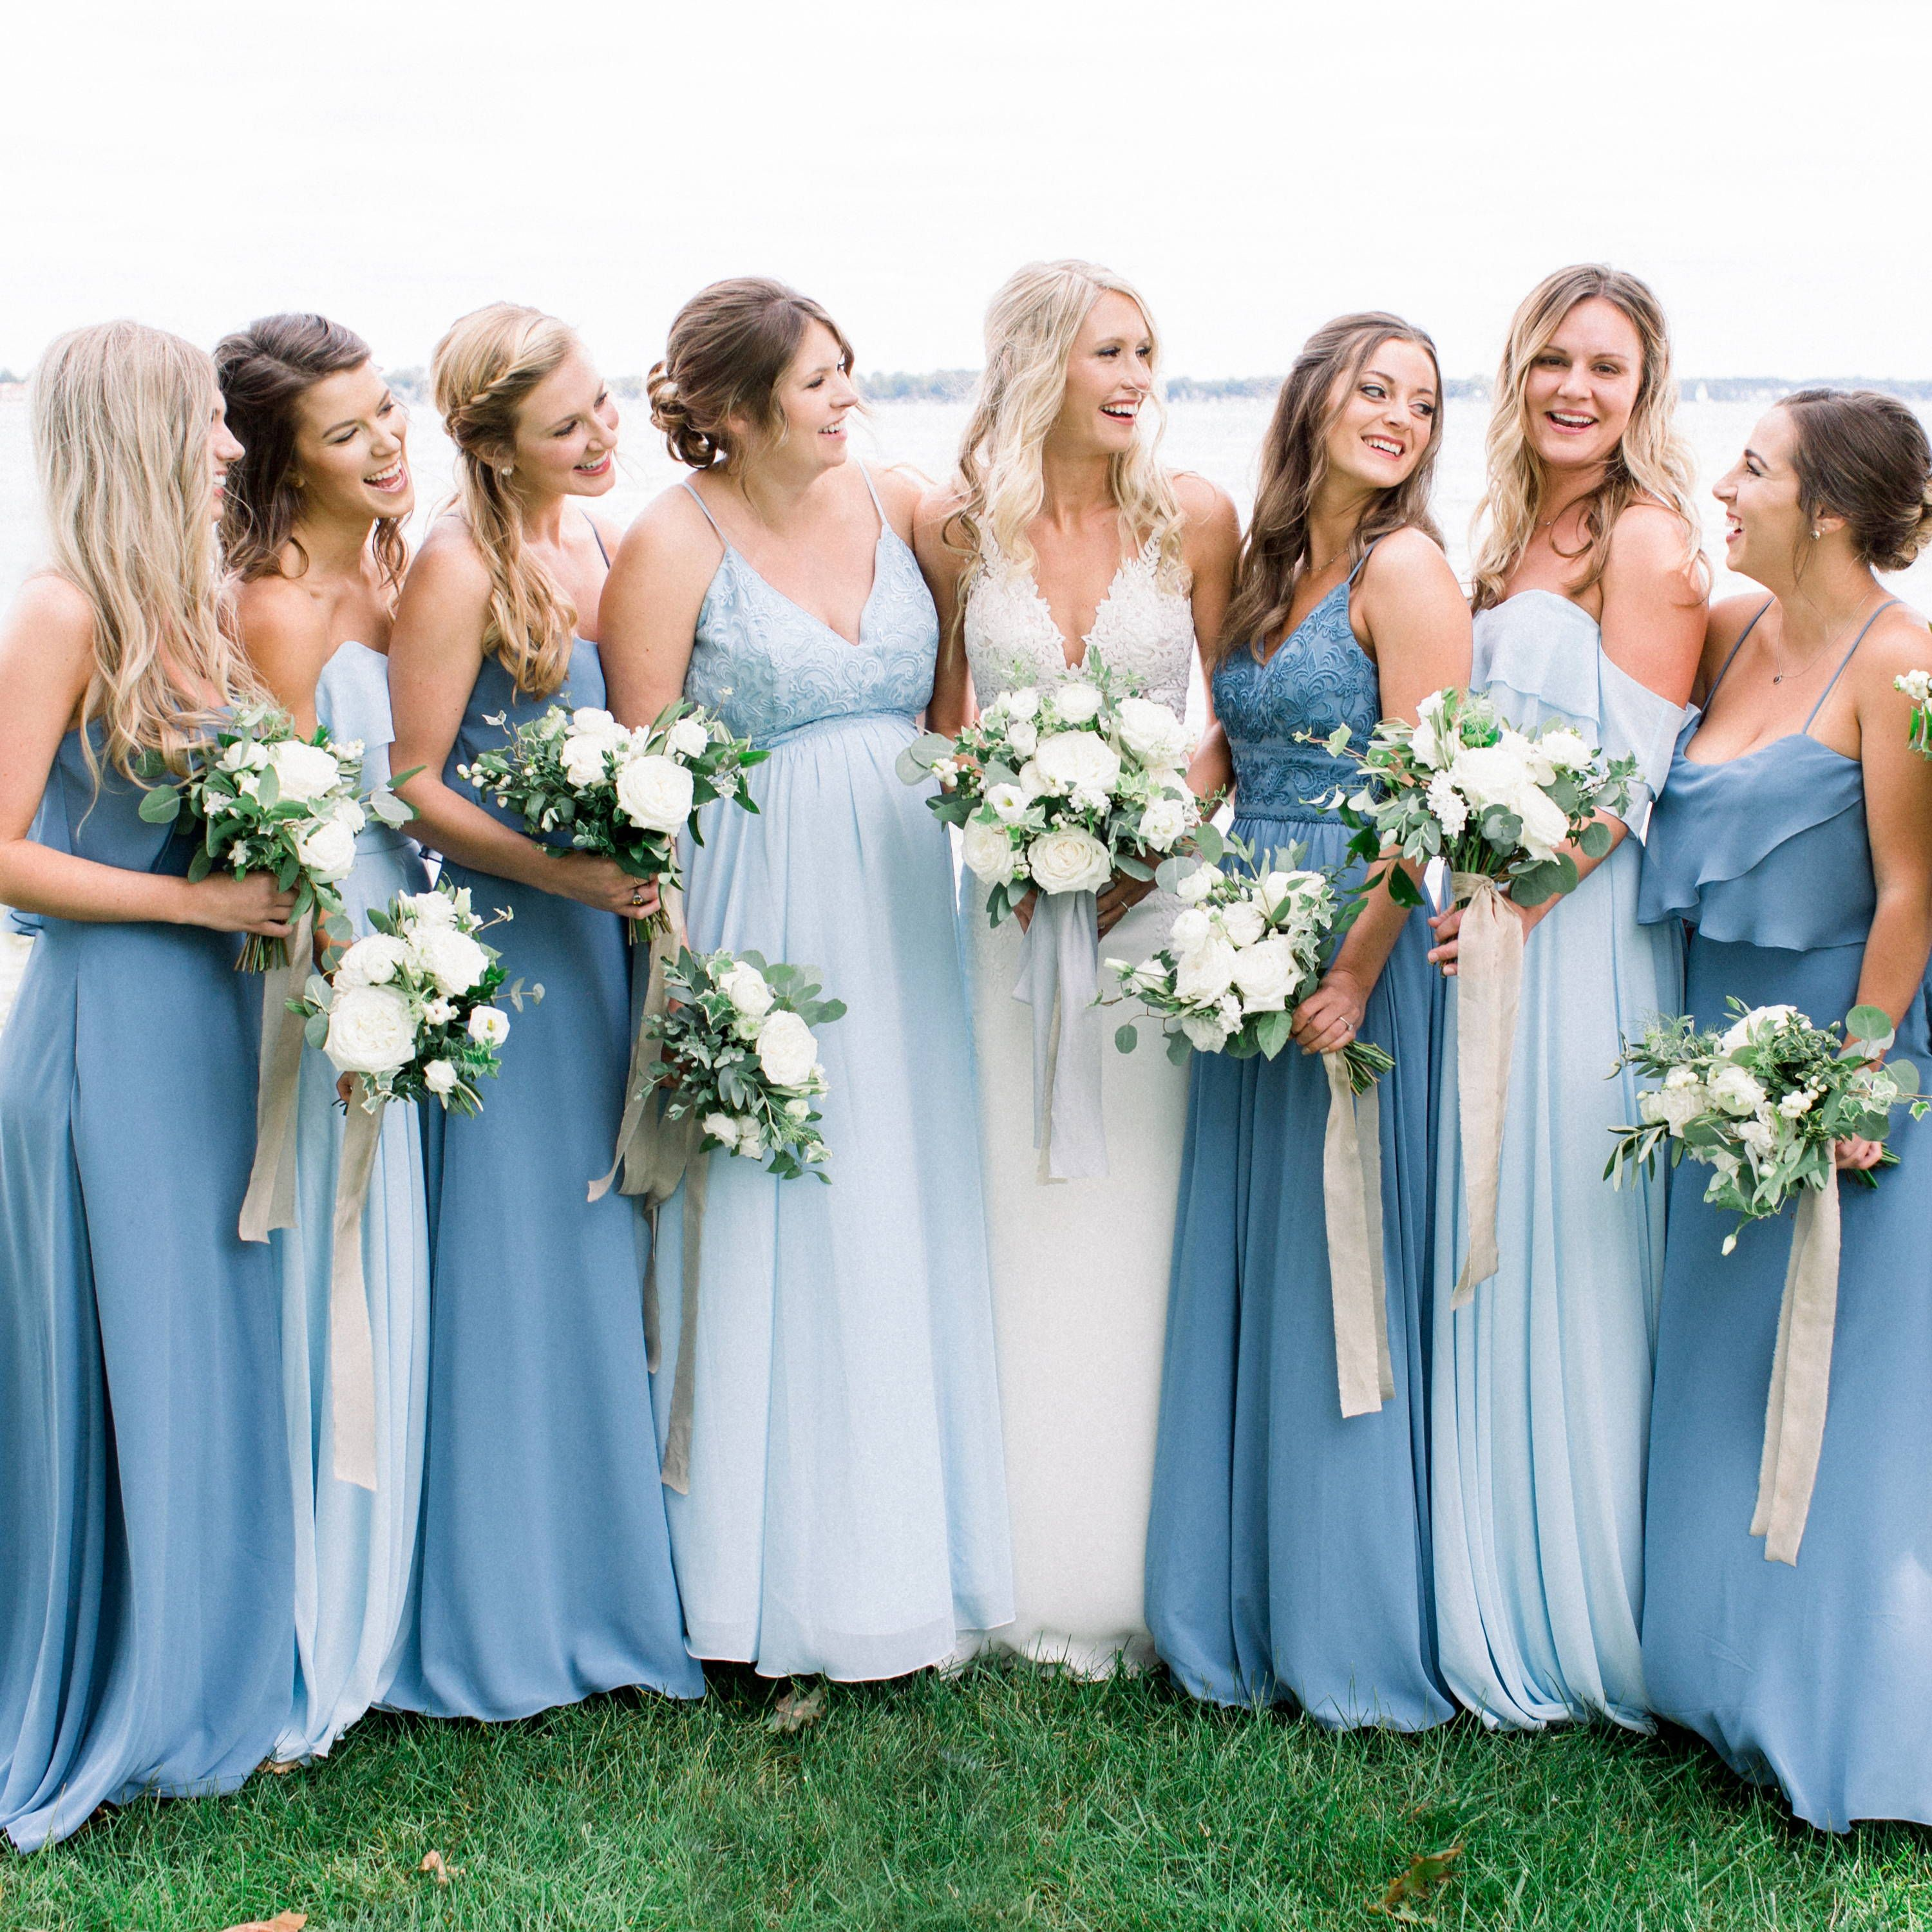 Free Fabric Color Swatch Mismatched Bridesmaid Dresses Blue Beach Bridesmaid Dresses Blue Bridesmaid Dresses [ 3000 x 3000 Pixel ]